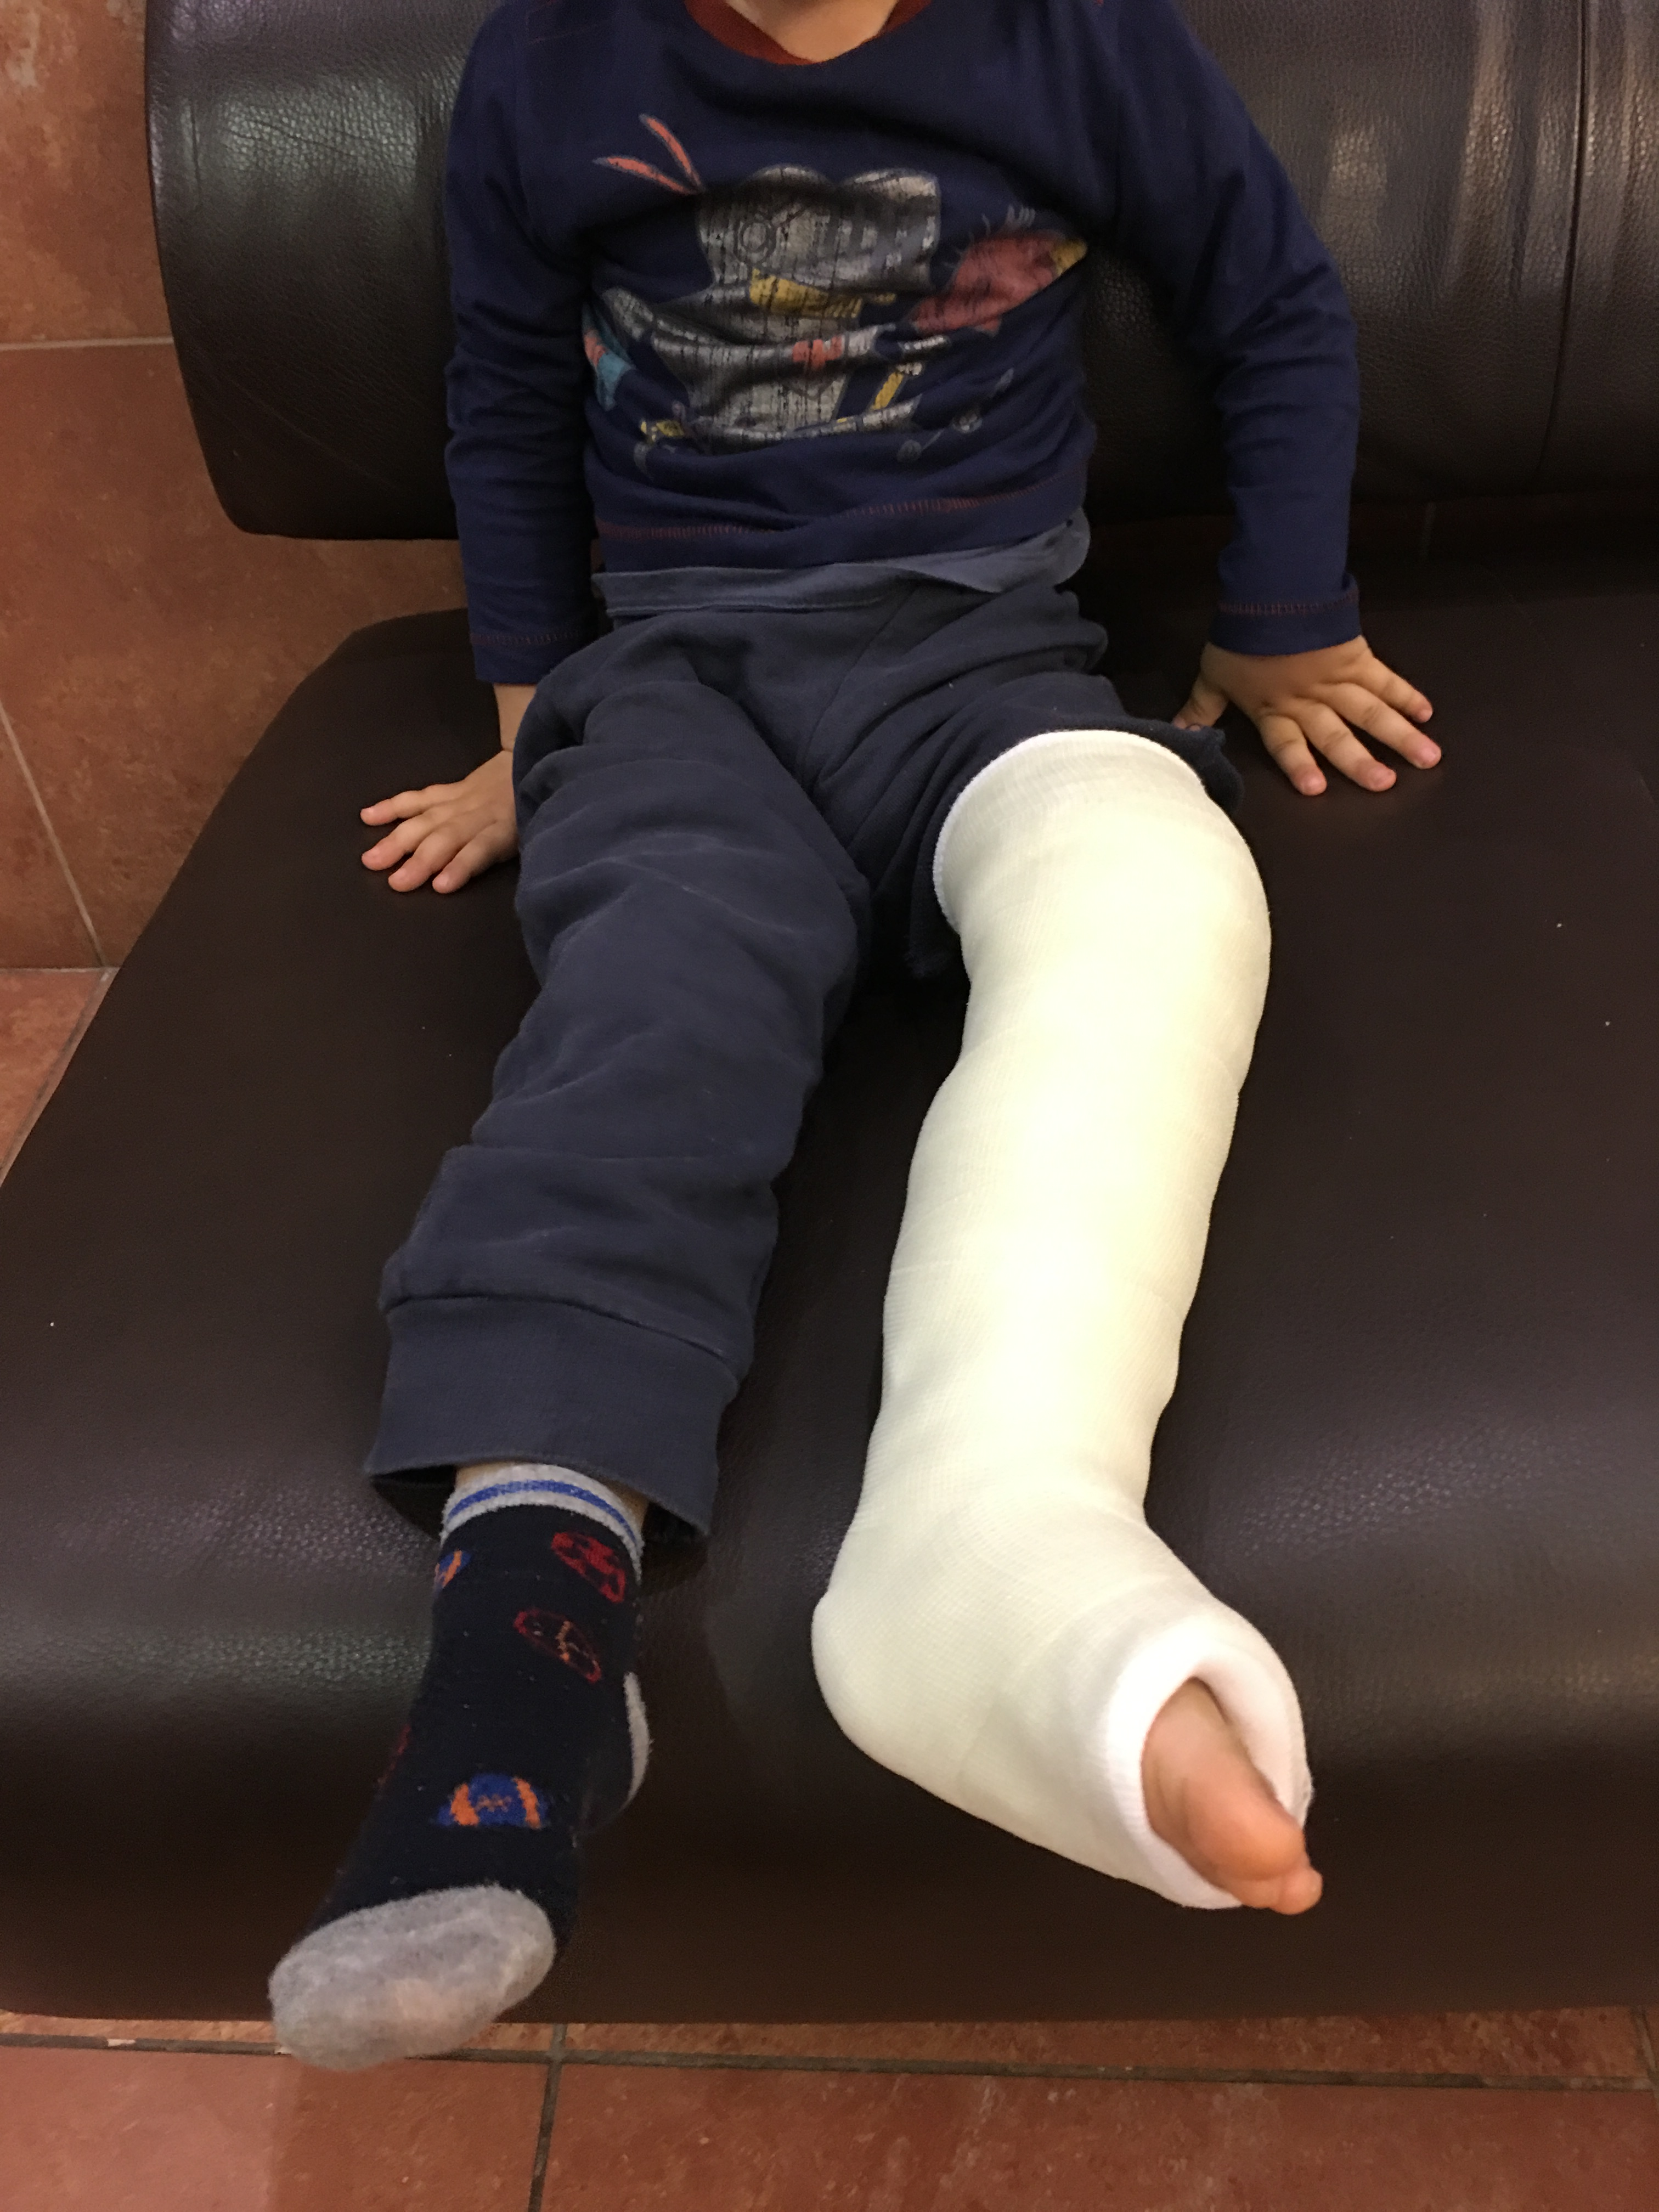 Kid with a casted leg